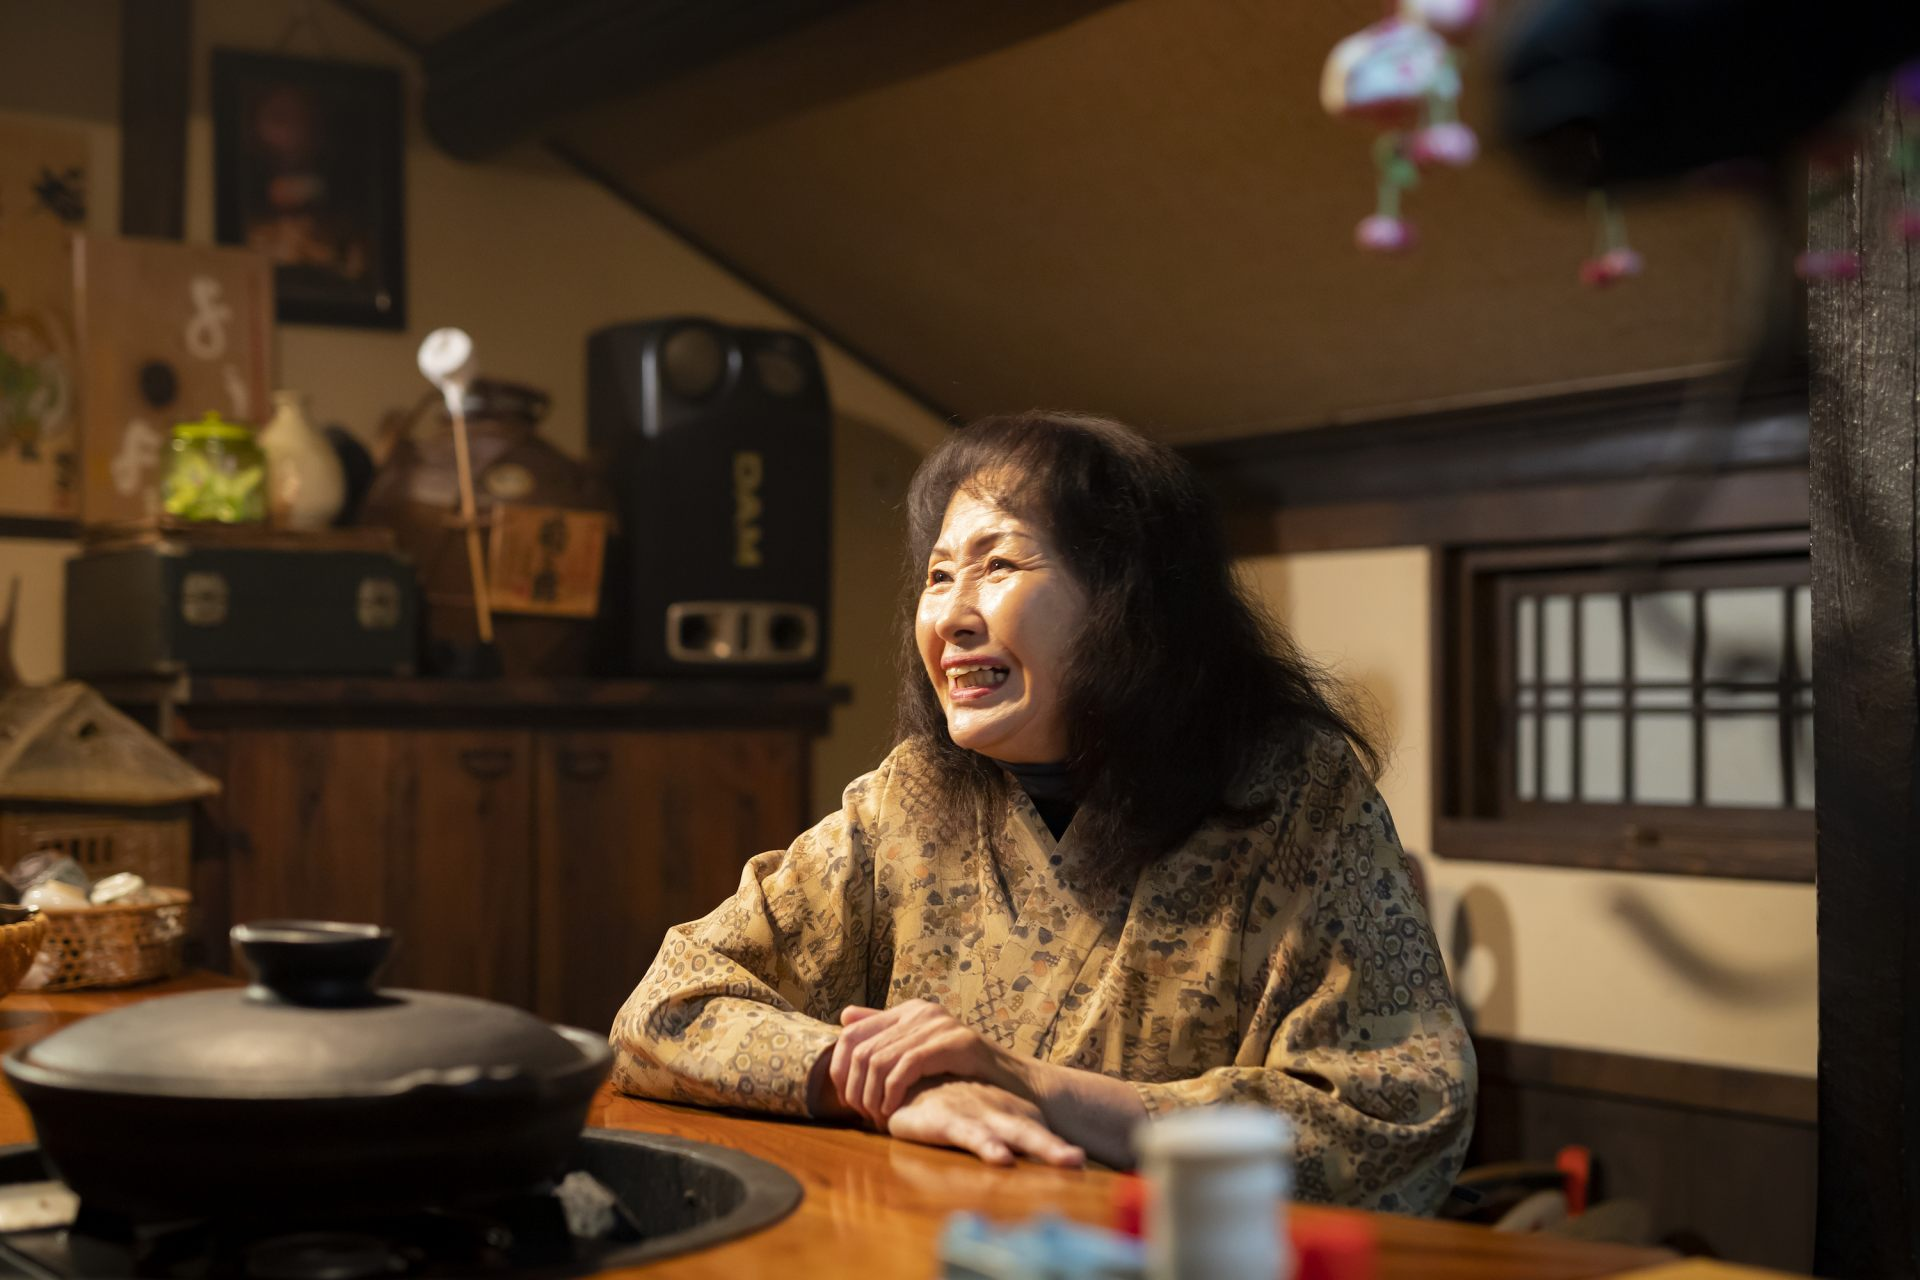 If you visit as a group, head up to the second floor, where the hostess will hold a lecture on tofu. The room is comfortable, and has a unique Japanese atmosphere.